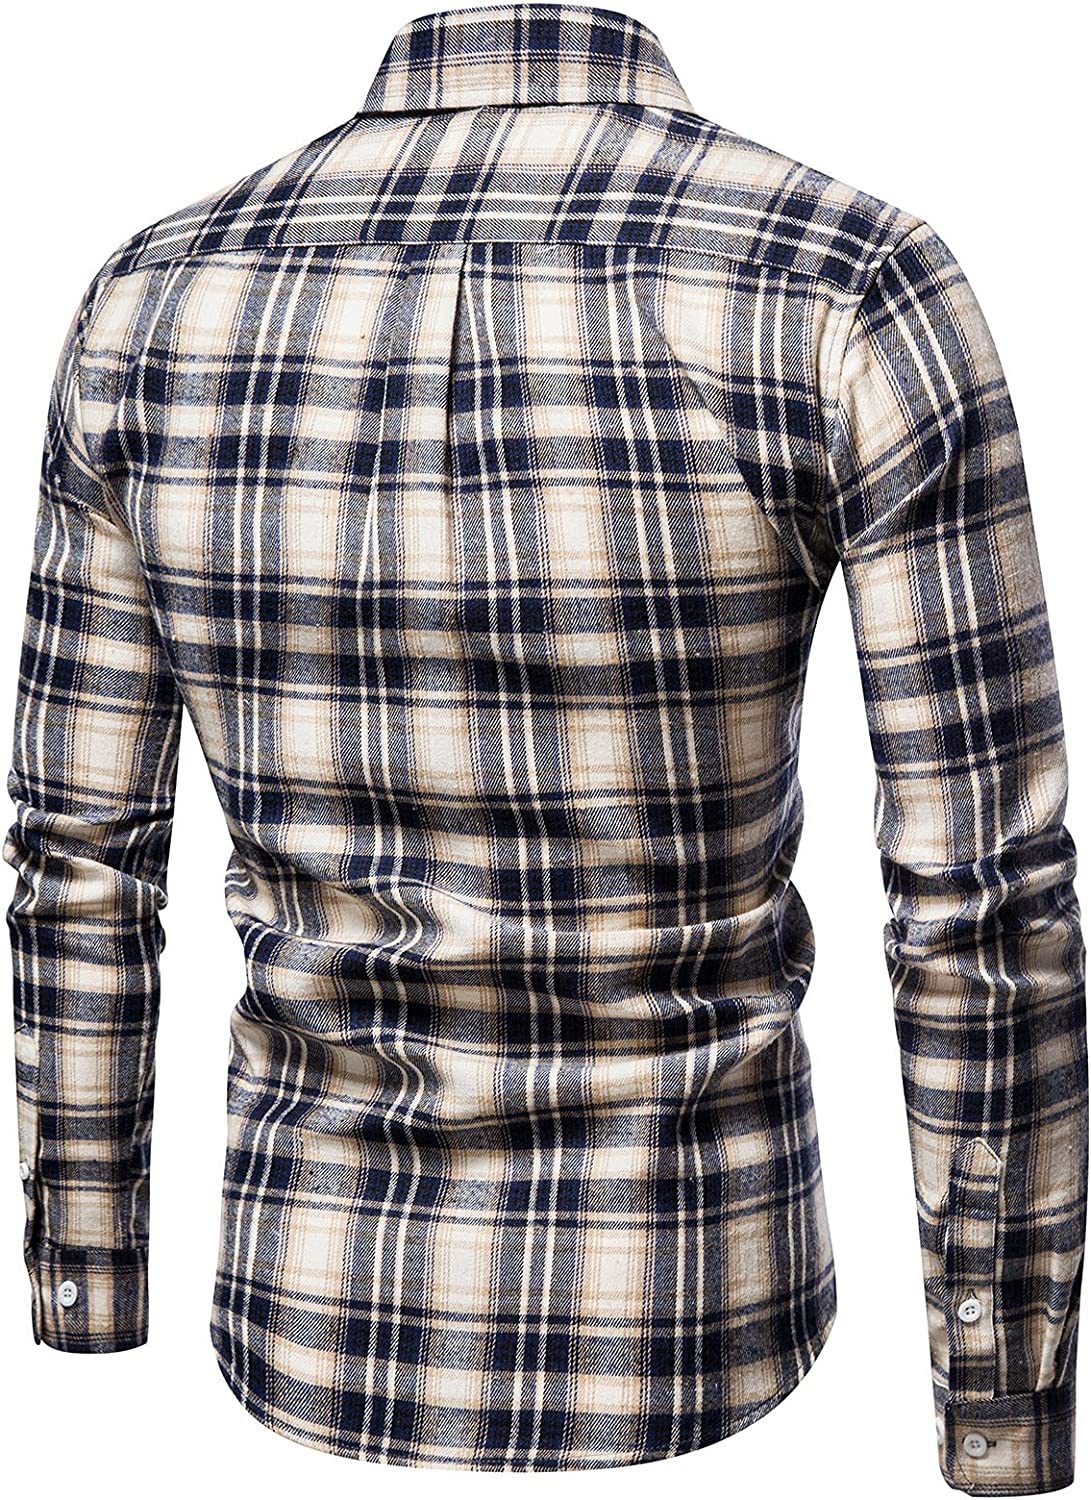 Men's Fashion Plaid Regular Fit Shirts Casual Cotton Shirts for Men Turn Down Collar Business Tops Blouse